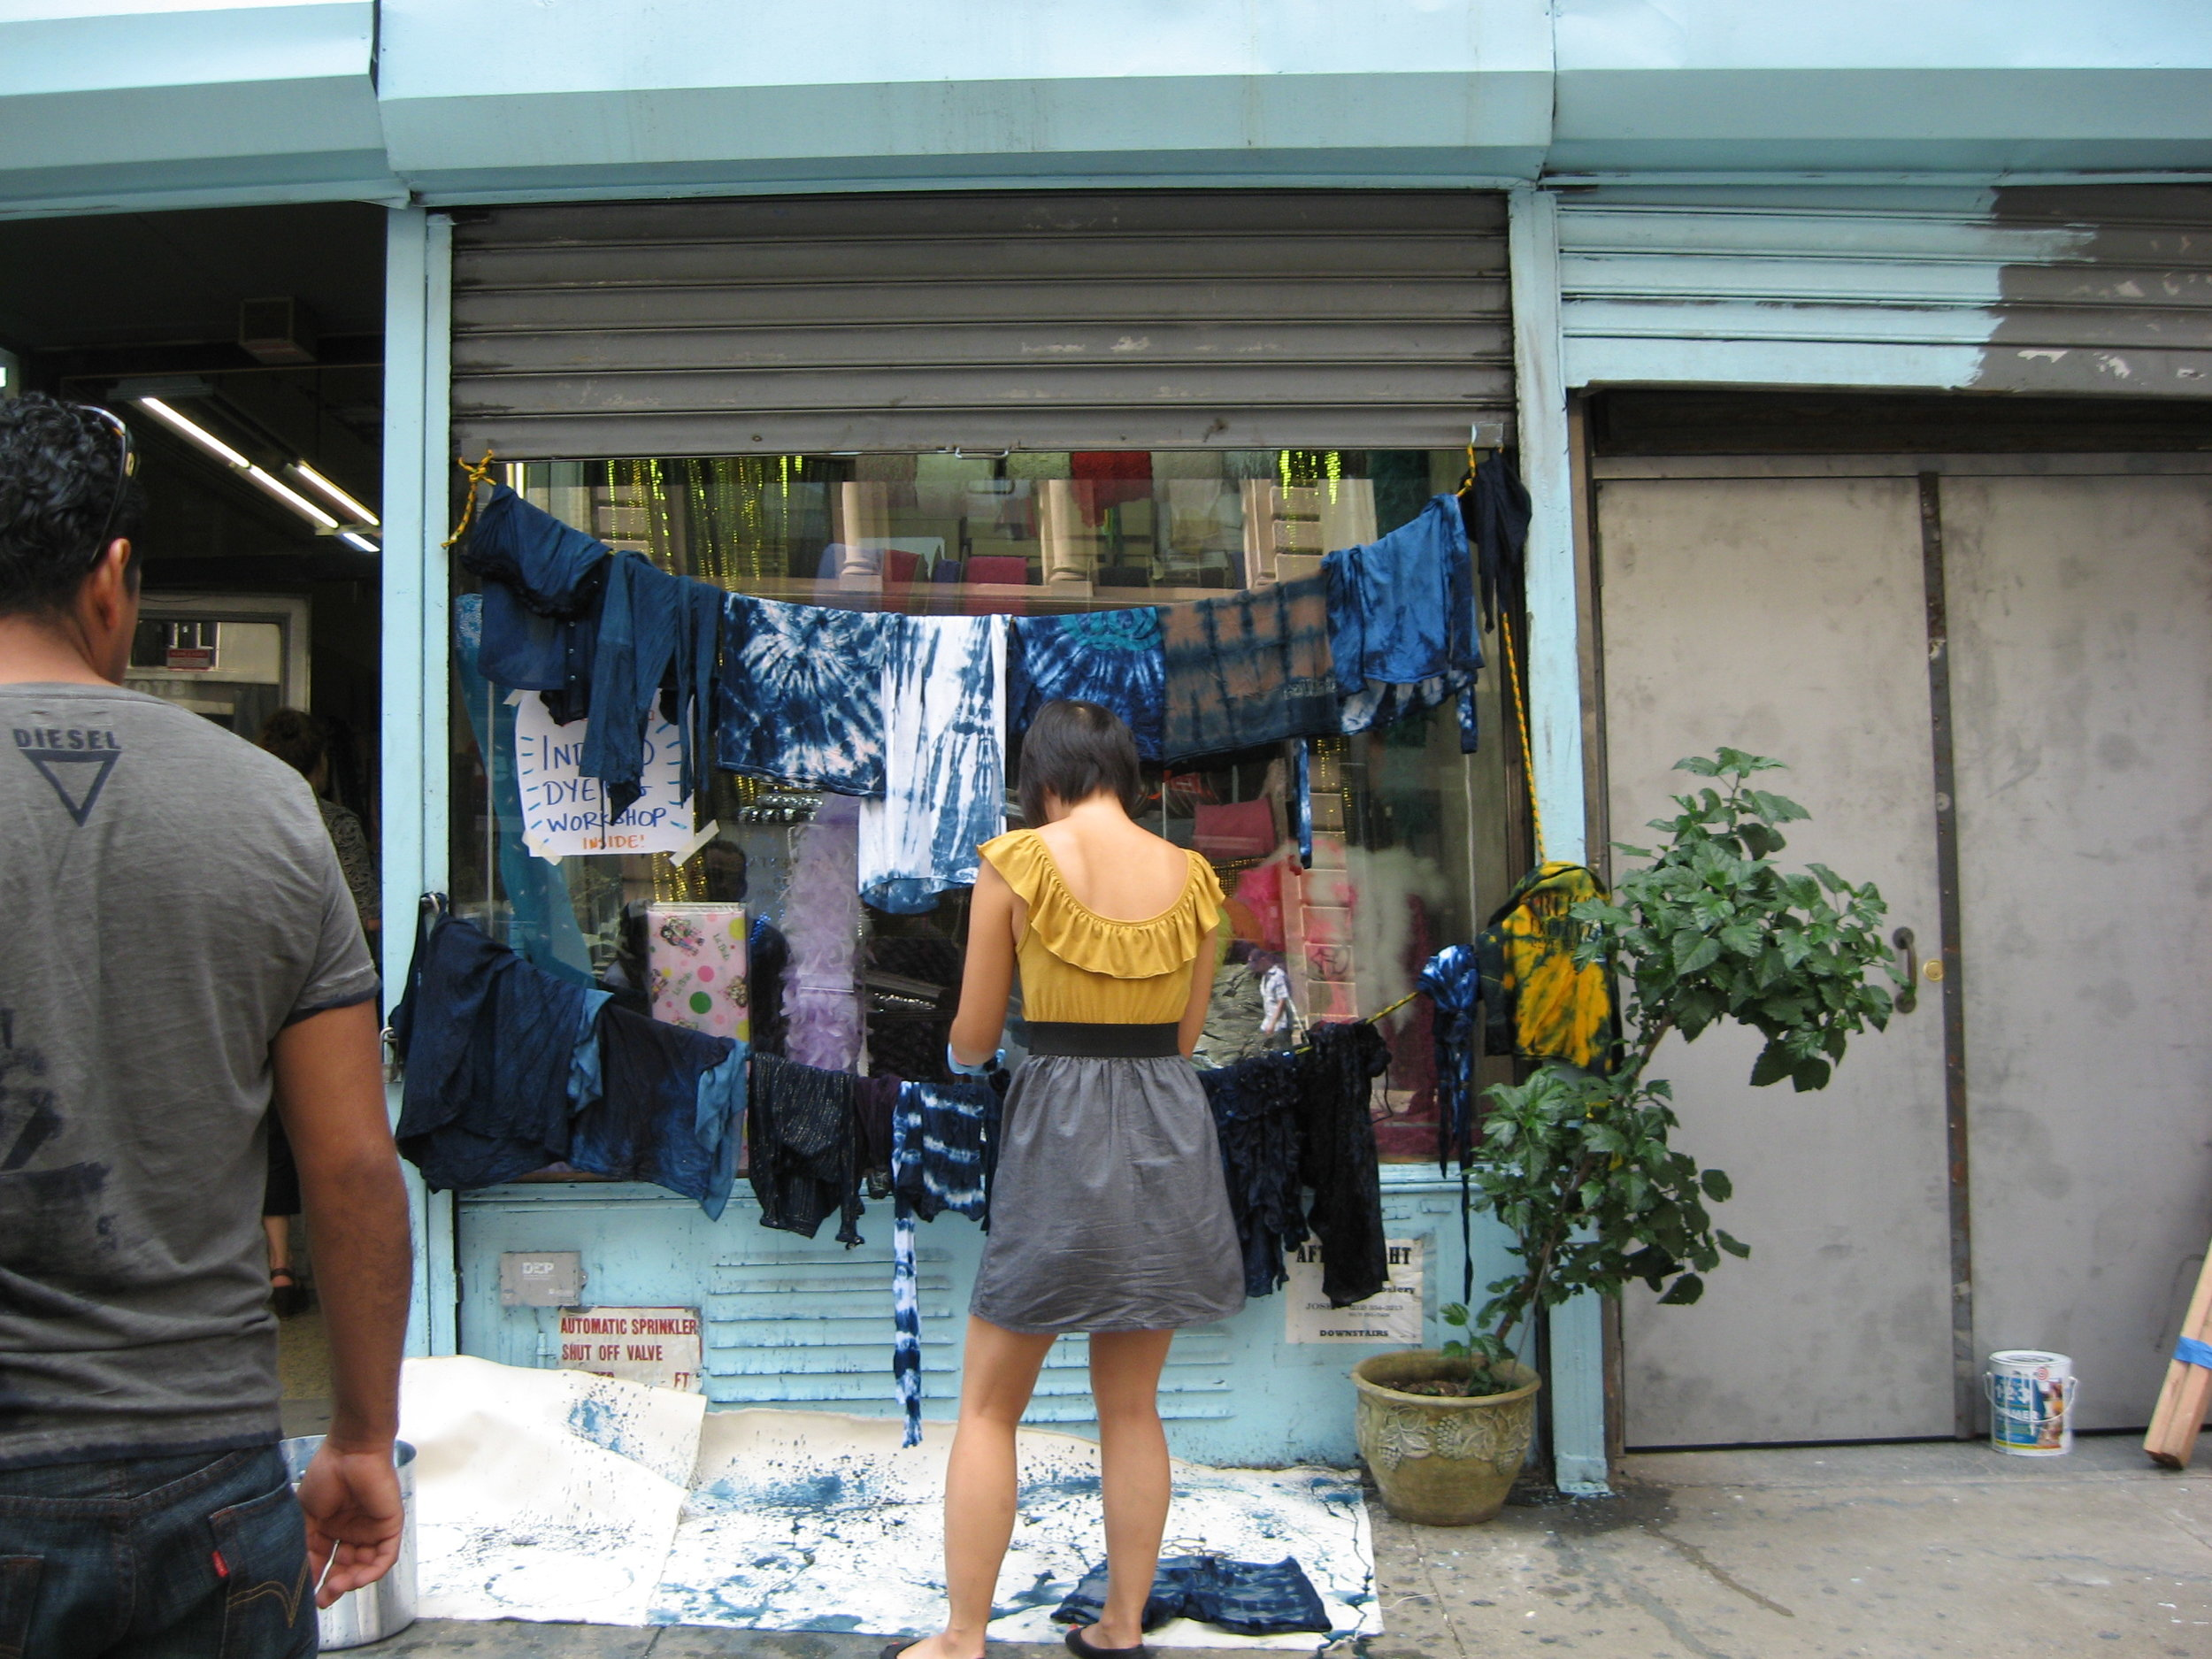 checking-out-the-clothesline_5060306963_o.jpg